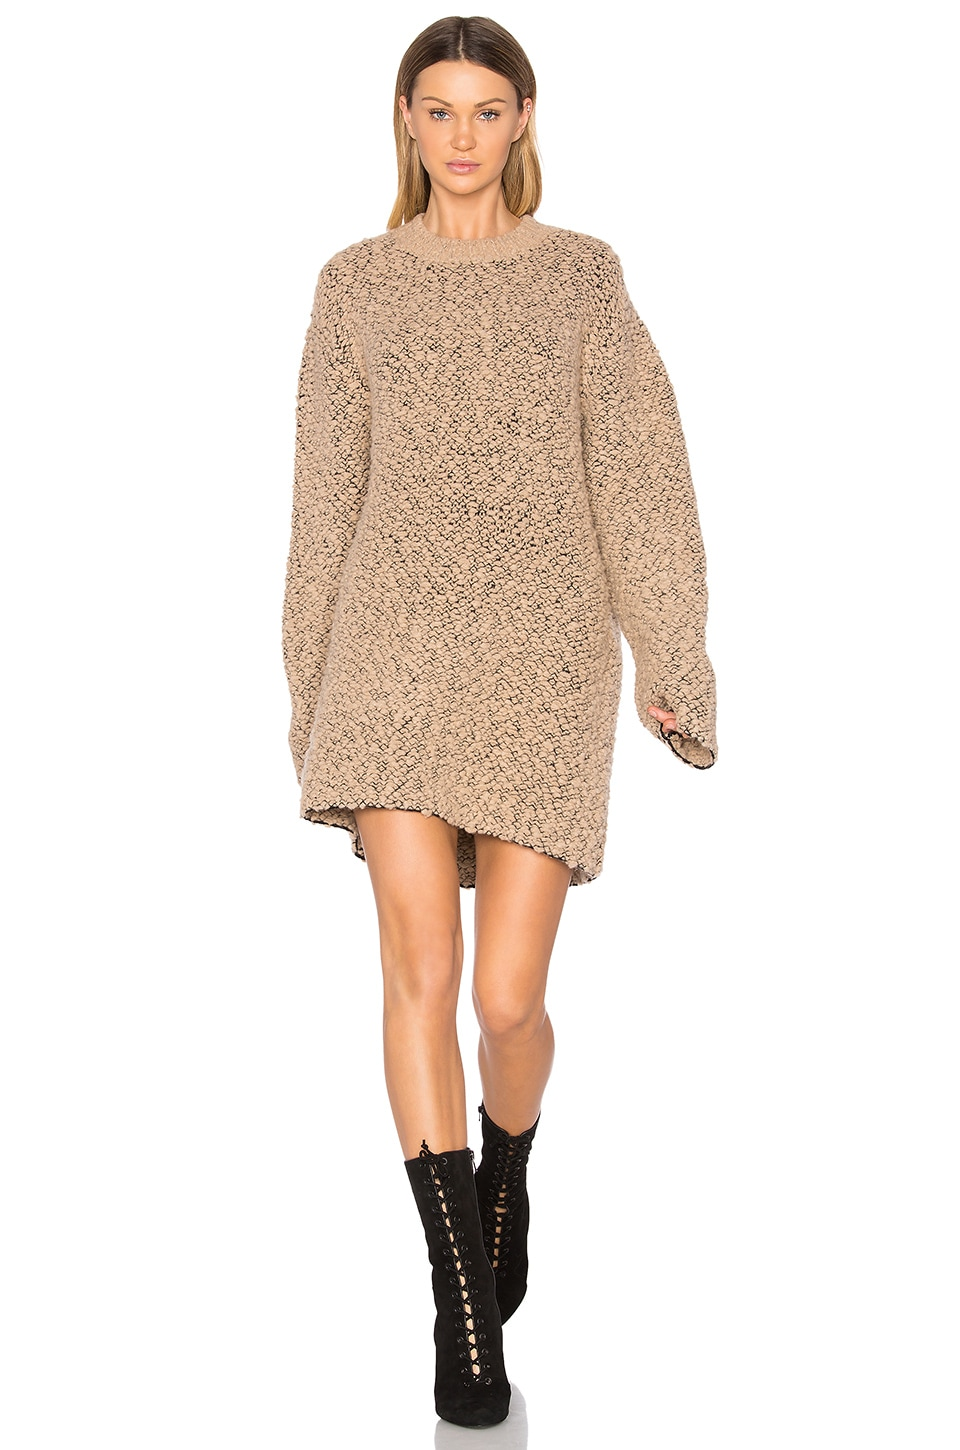 YEEZY Season 3 Oversized Teddy Boucle Sweater in Desert Noise